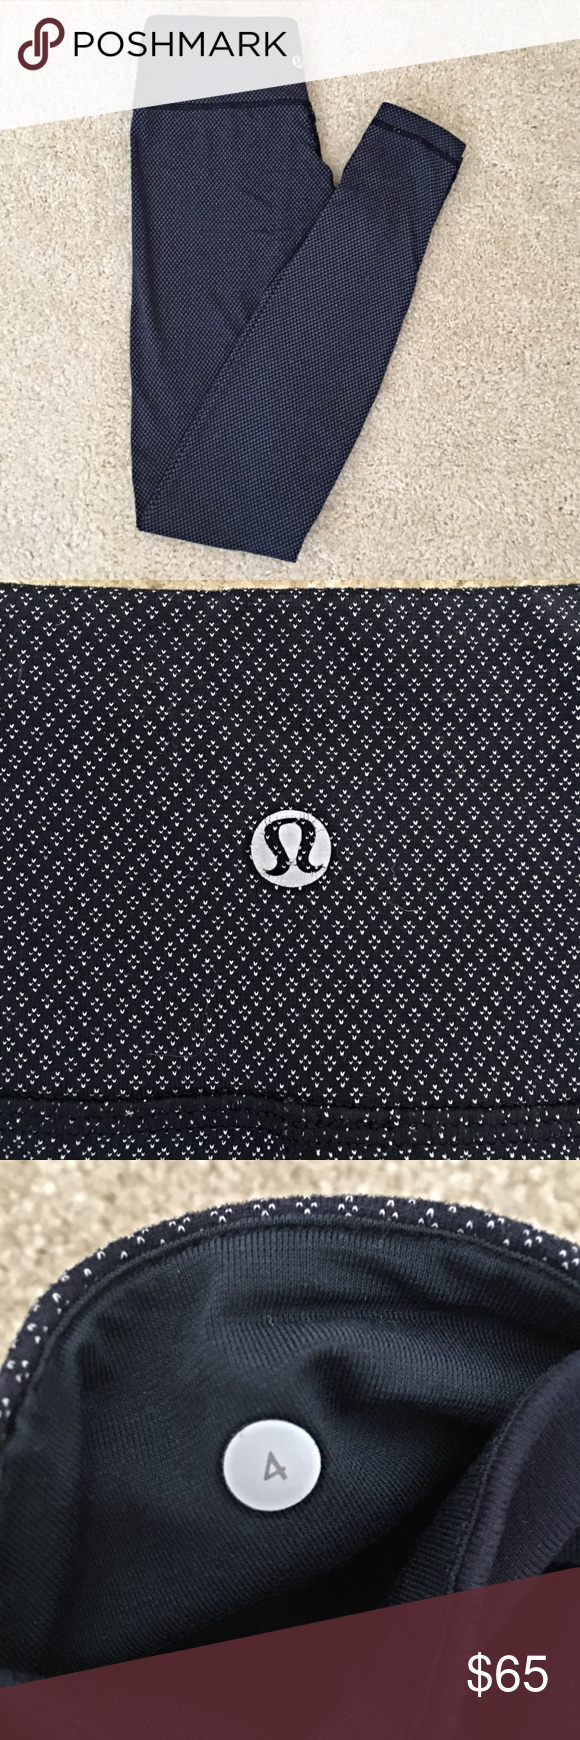 Lululemon Wunder Under Leggings Navy Diamond Dot pattern in great condition. I bought these from another Posher and decided they weren't quite the right size. lululemon athletica Pants Leggings